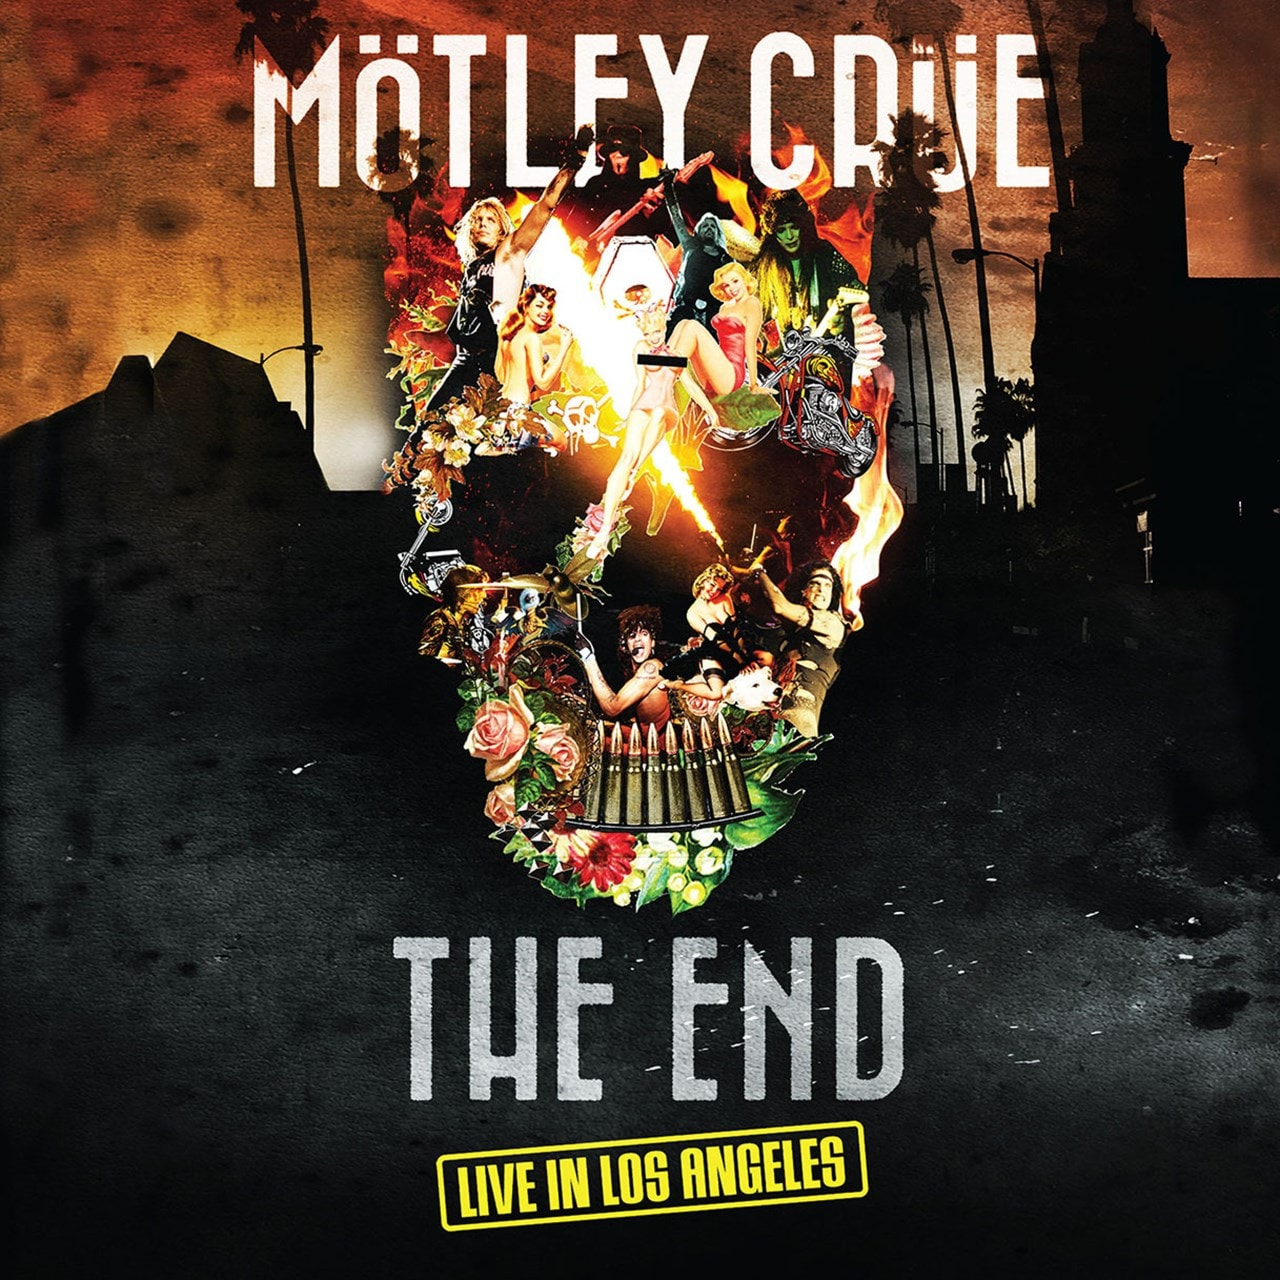 The End: Live in Los Angeles - 1